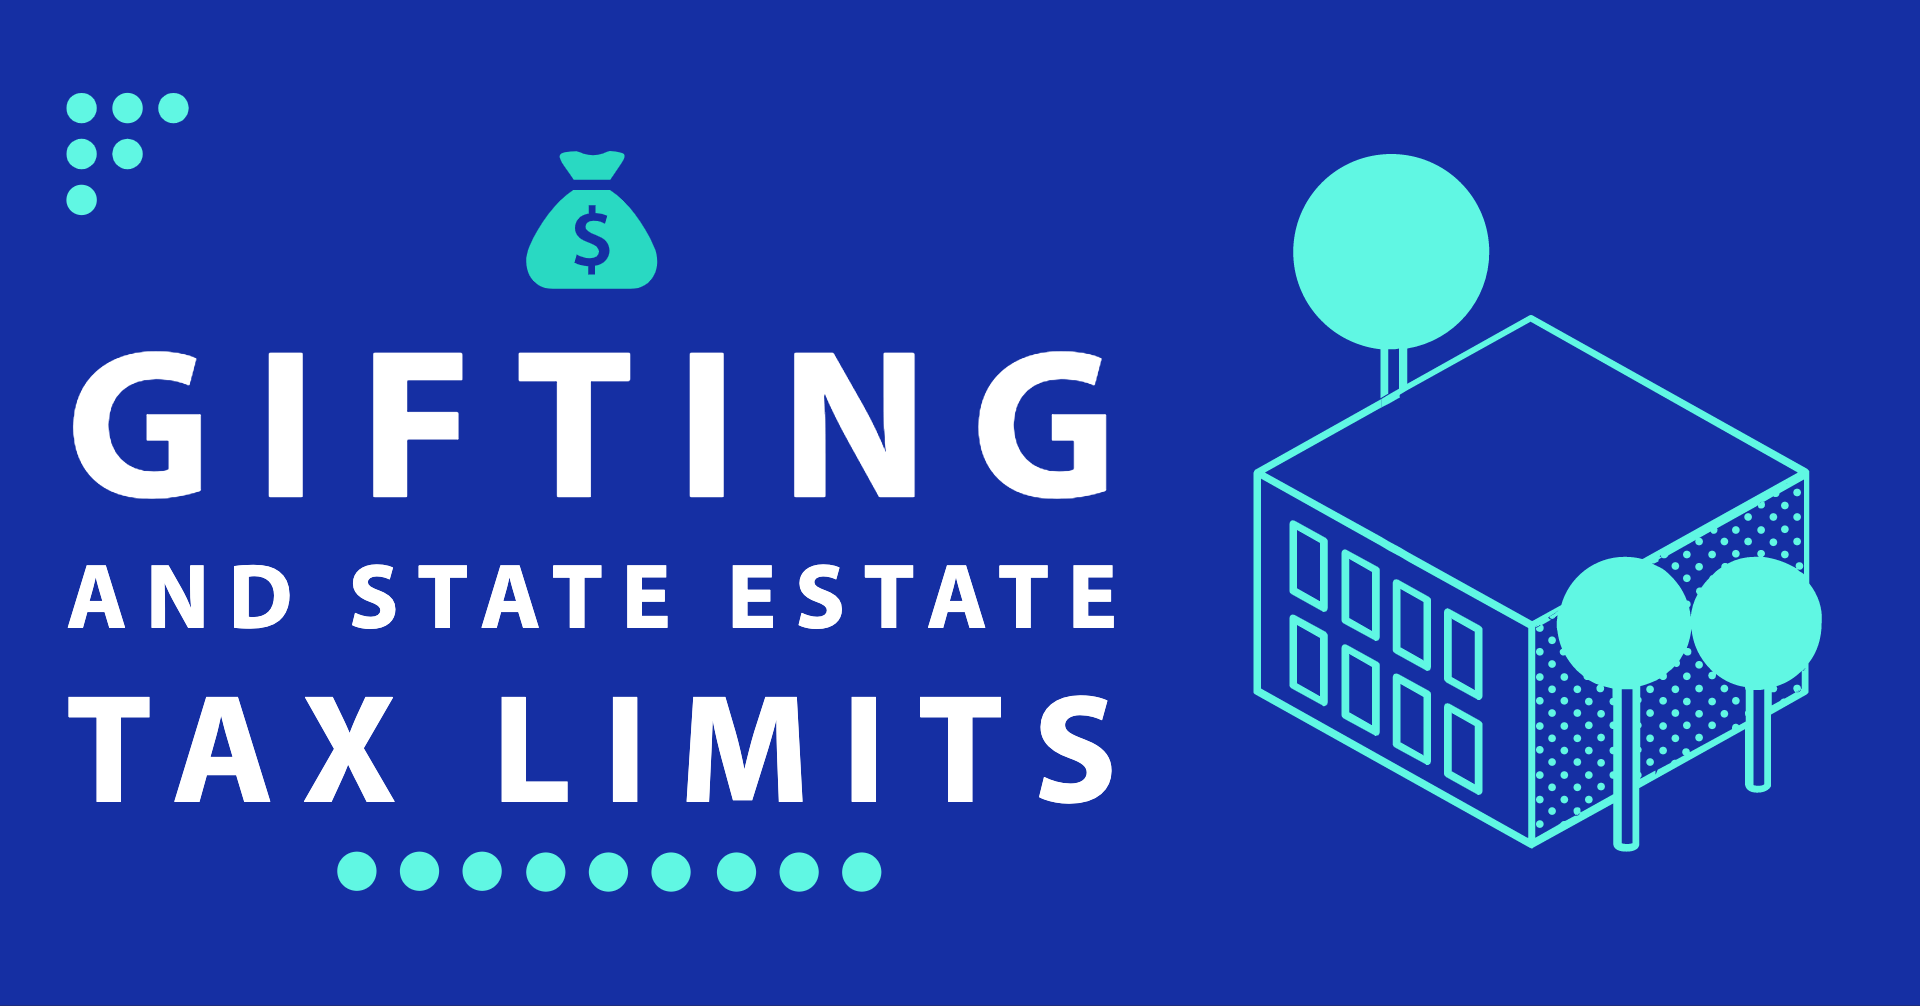 Gifting and State Estate Tax Limits